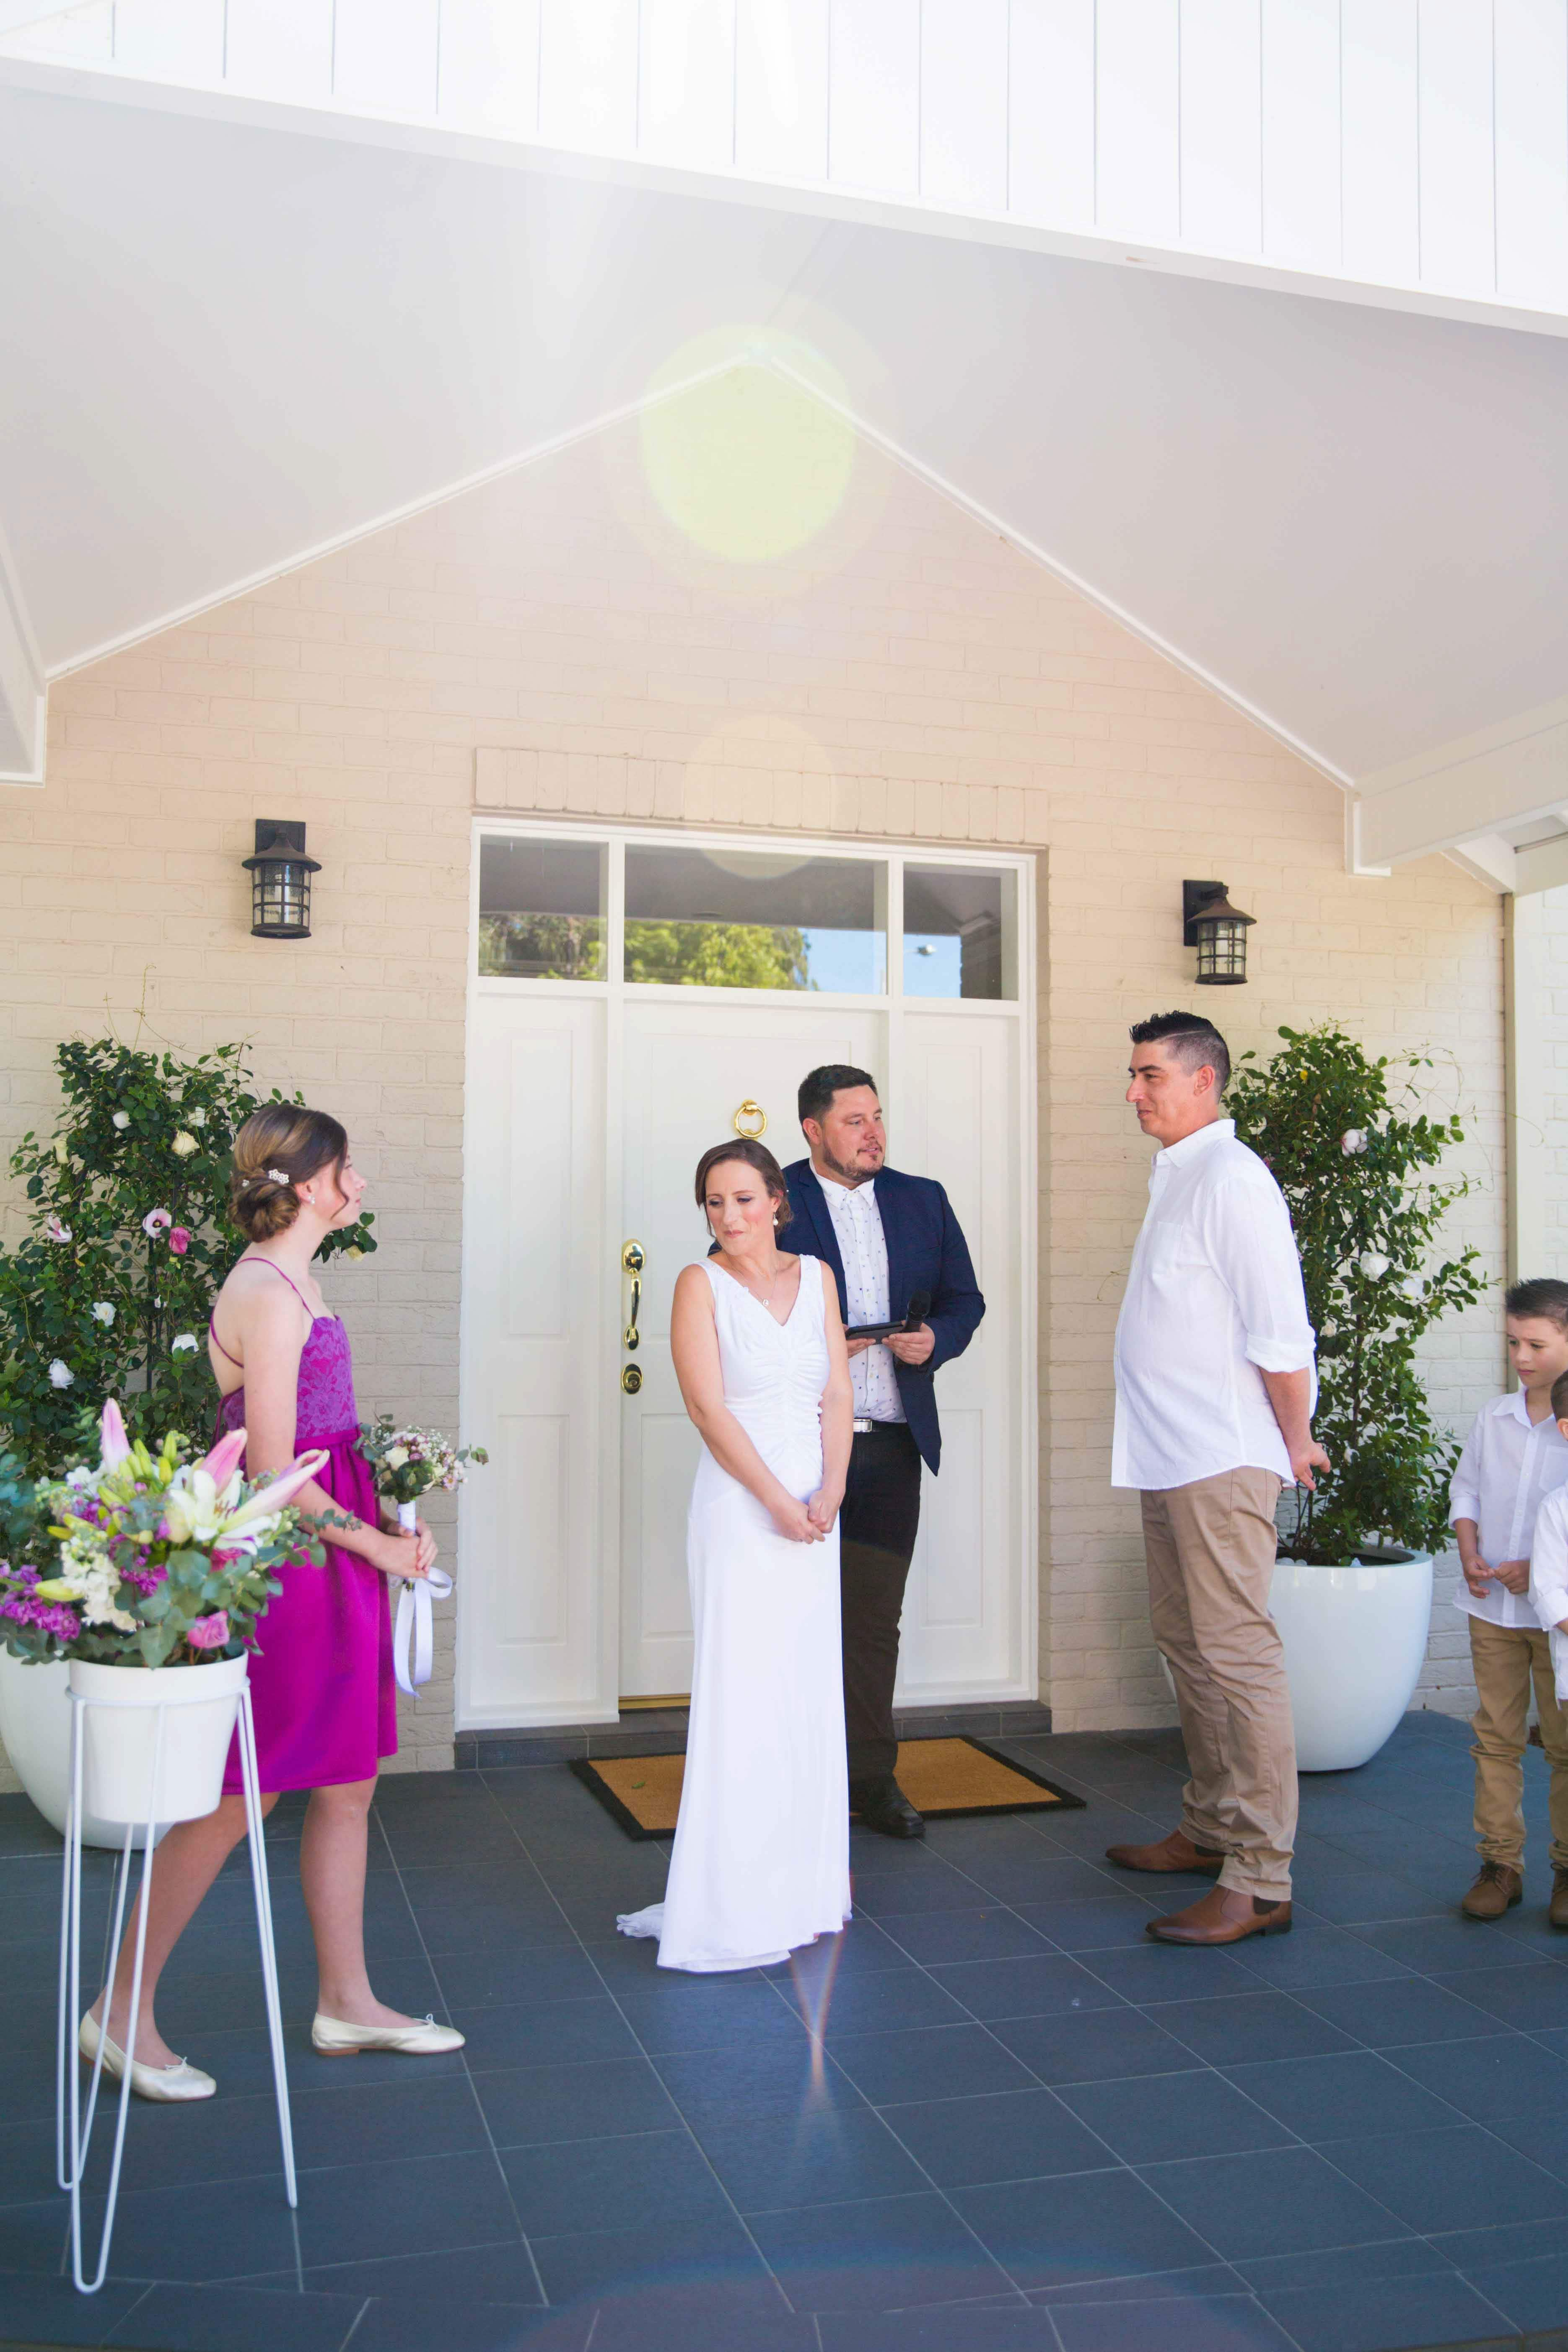 Marriage ceremony with bride and groom at the alter at Whitebridge NSW